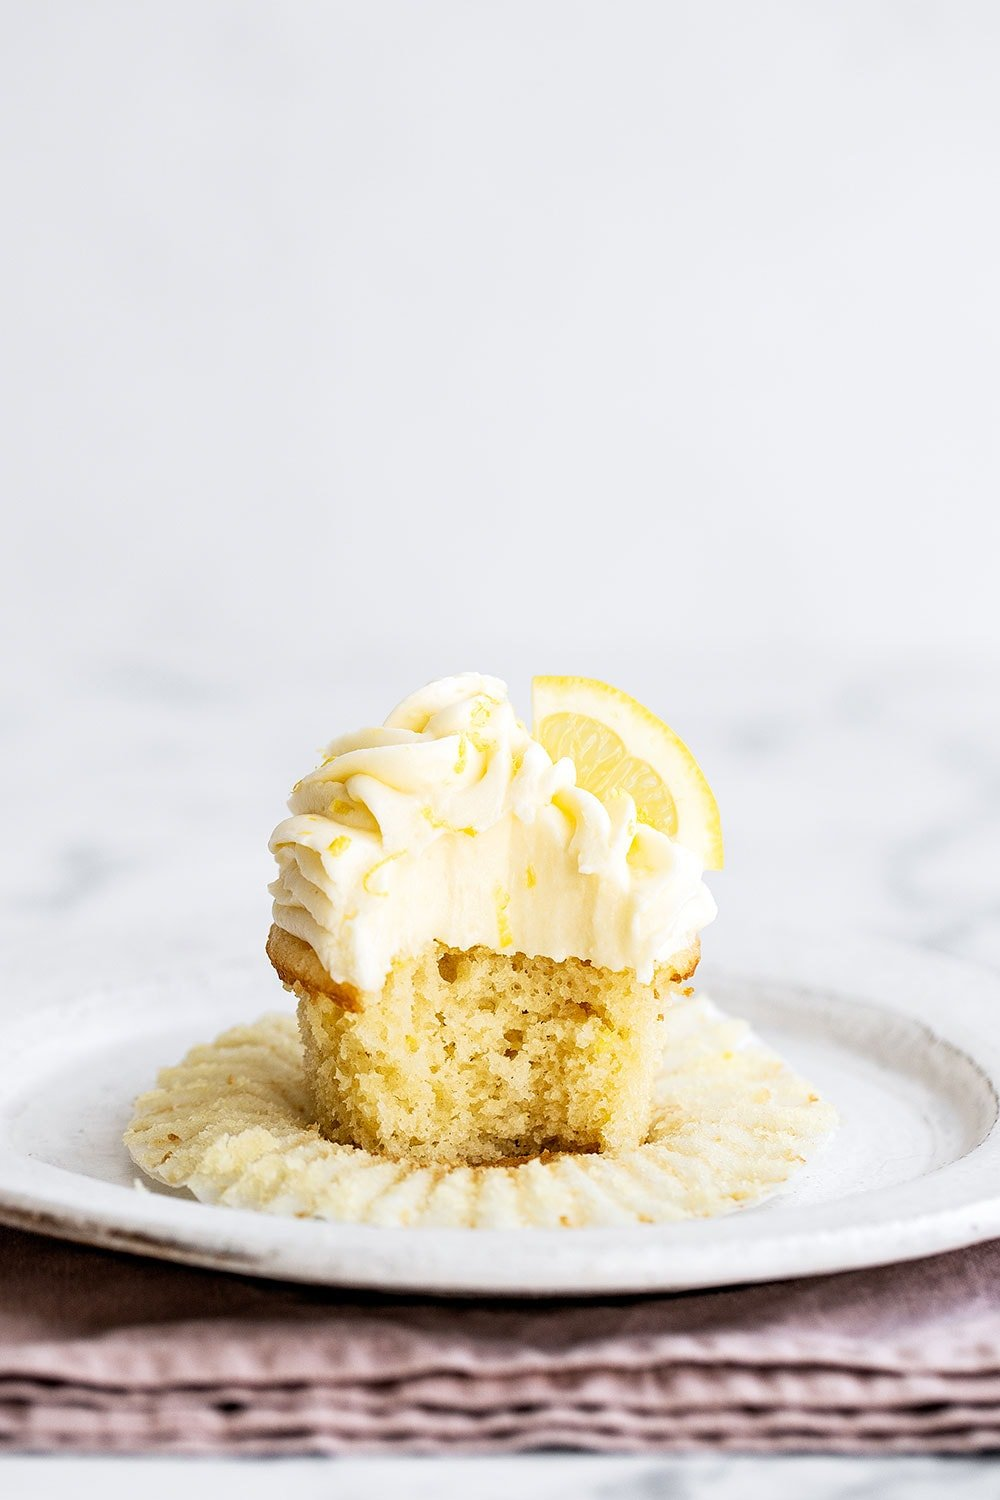 Lemon cupcake on a plate with cupcake liner removed